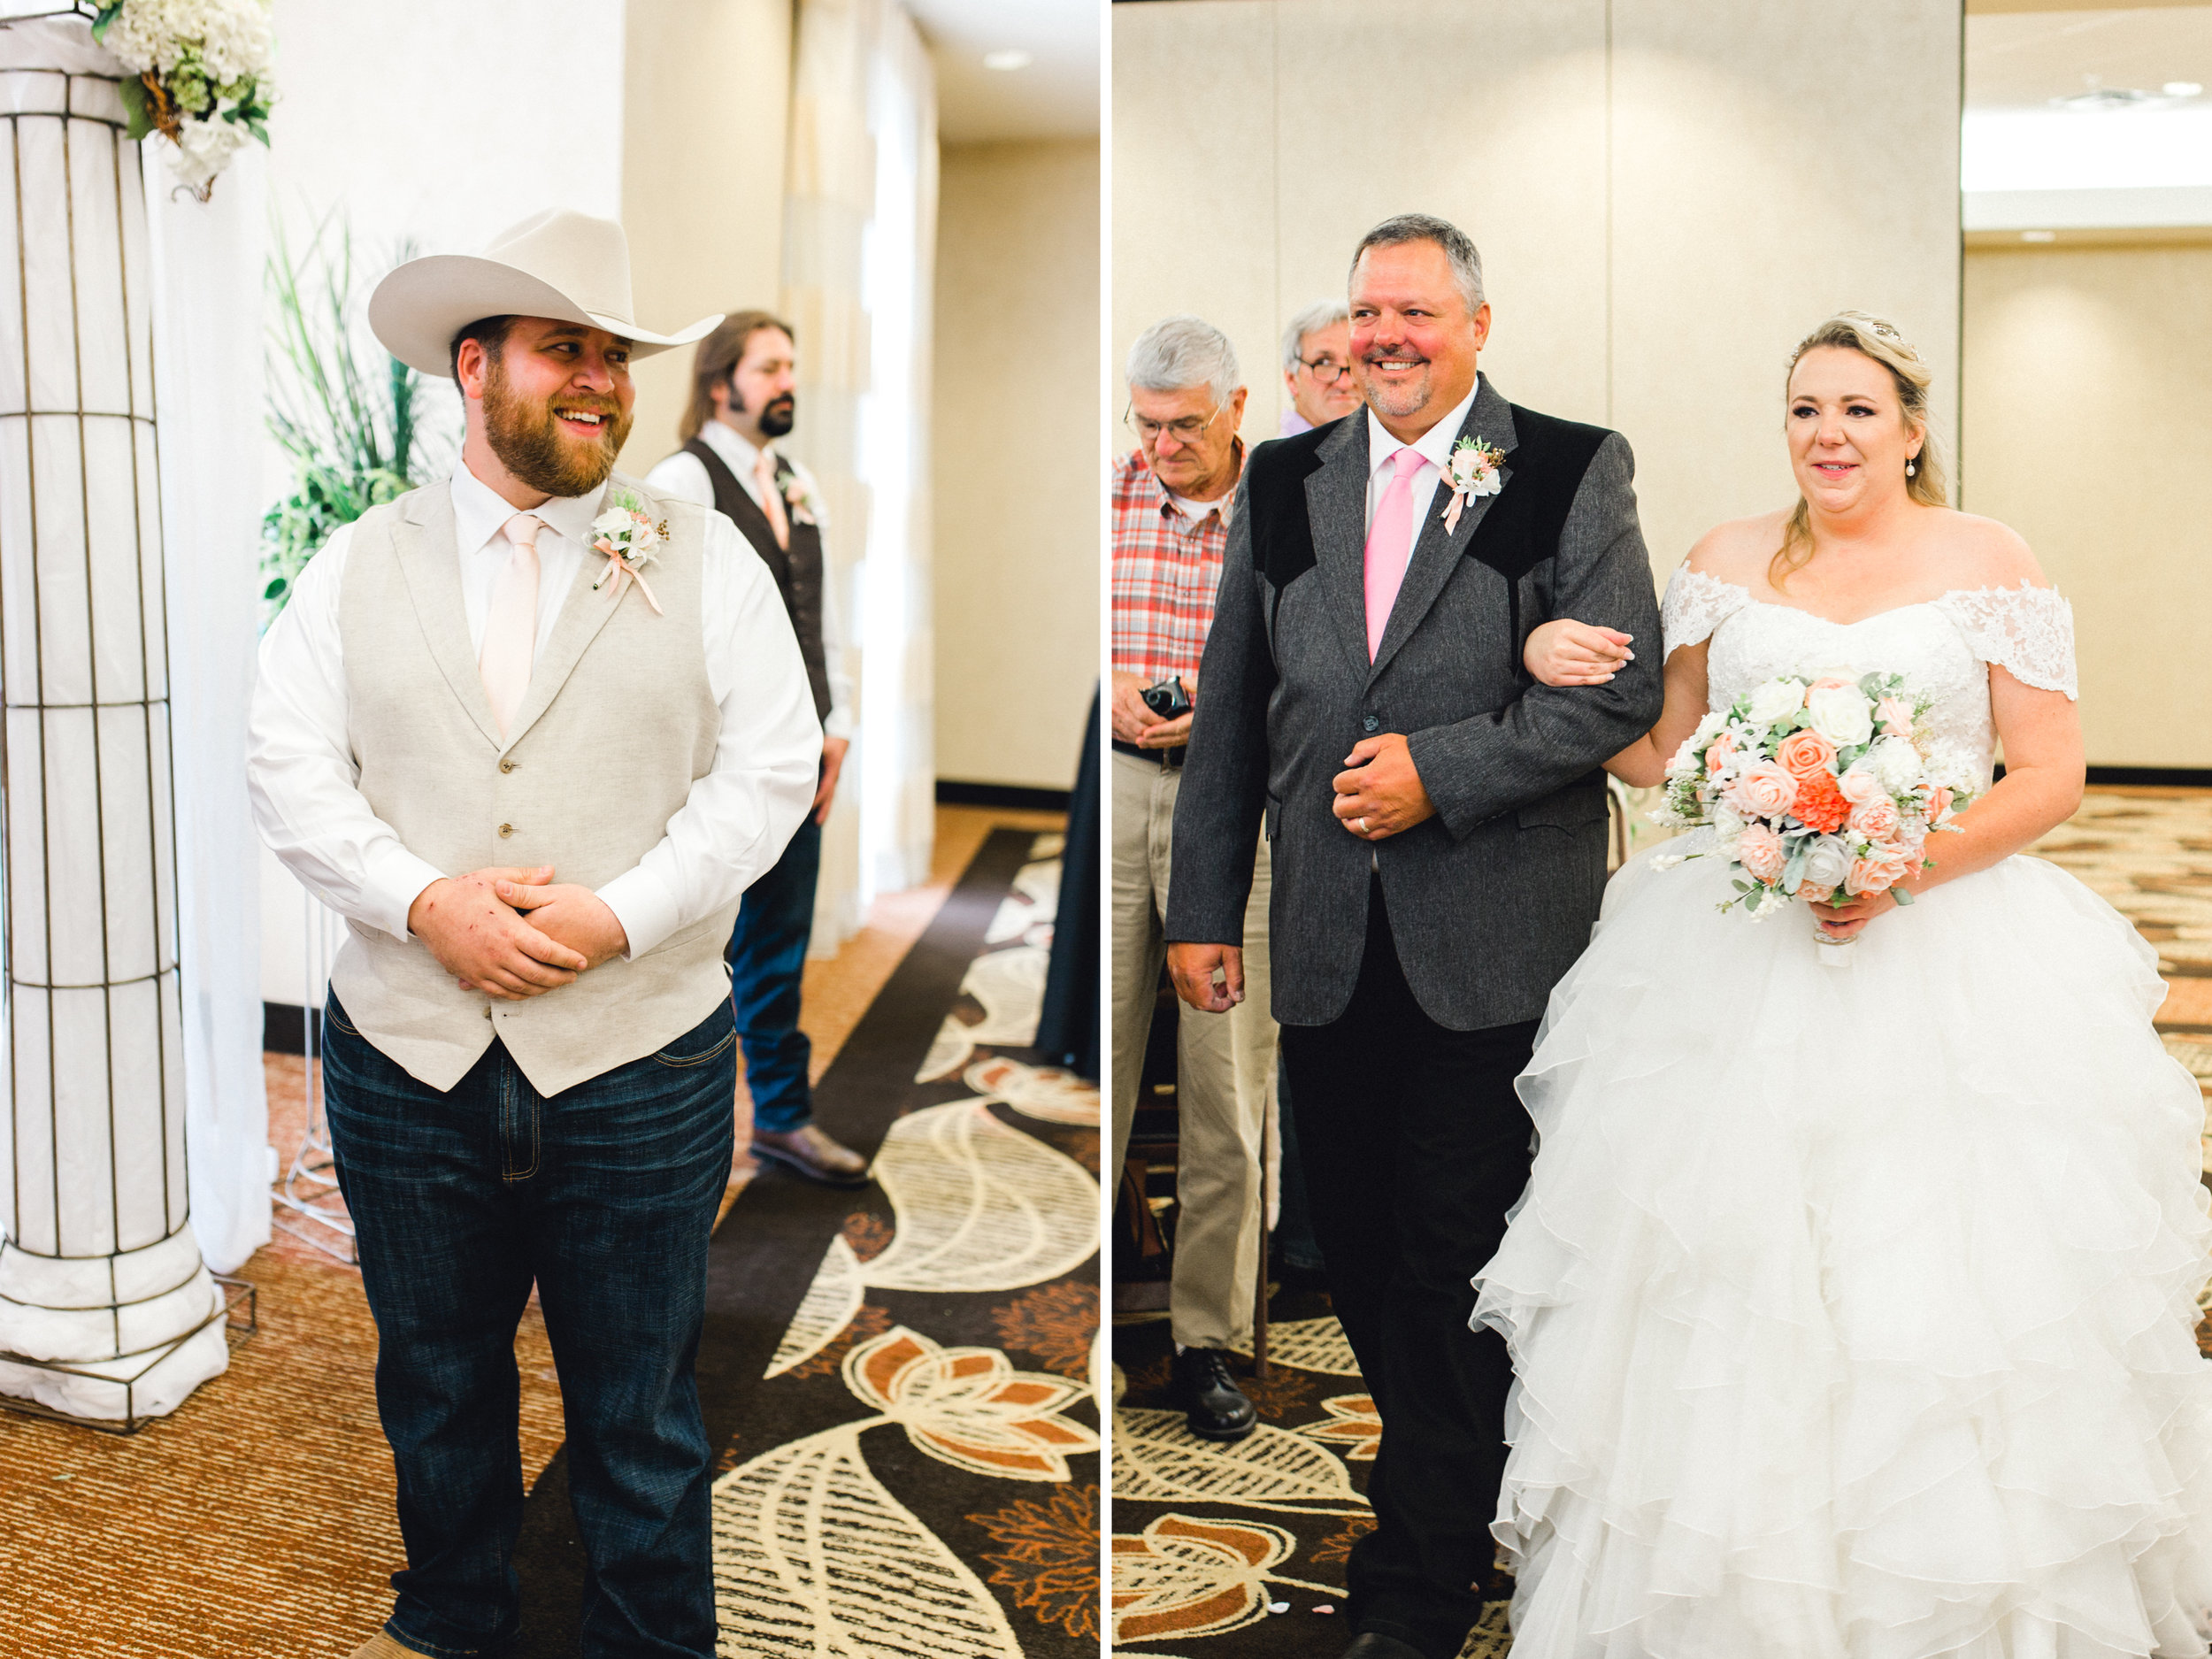 idahofallsweddingphotographer-hotelwedding8.jpg